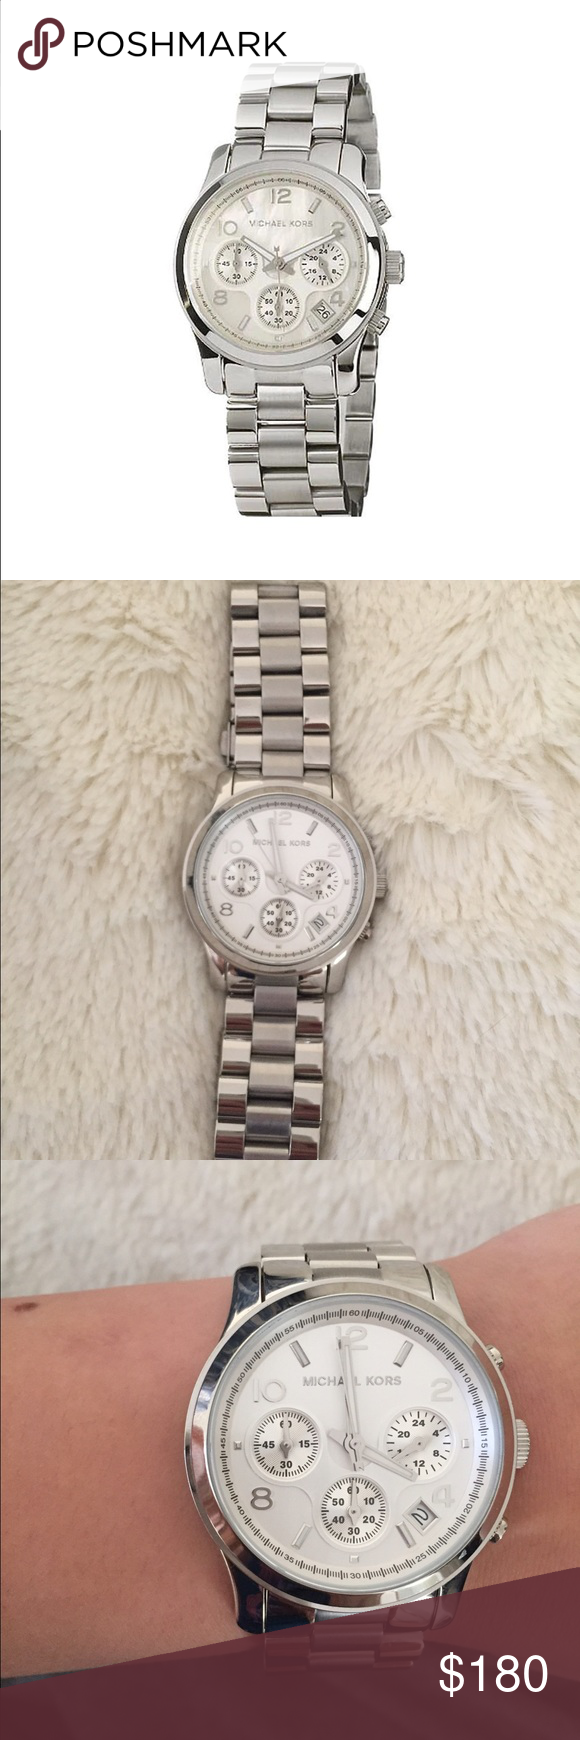 Michael Kors Women's Watch MK5305 Chronograph. New. Worn 2/3 times Accessories Watches